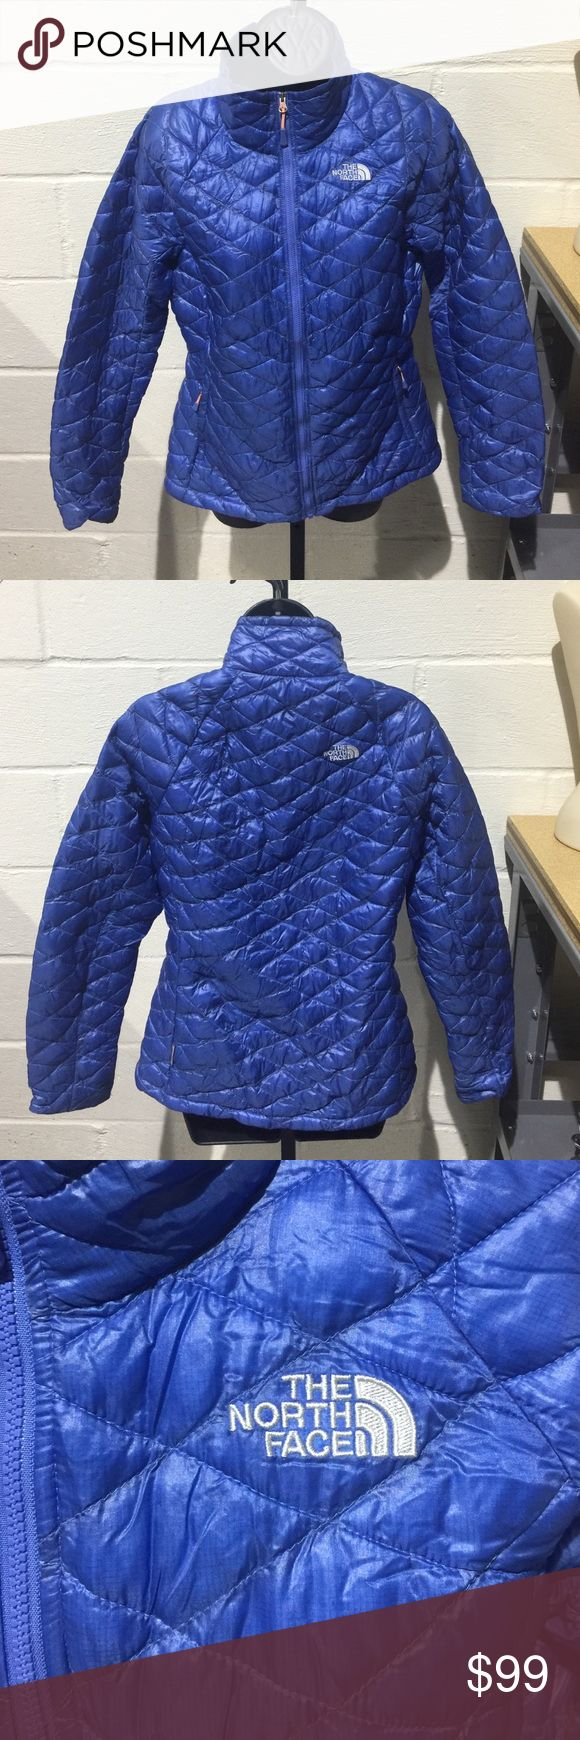 The North Face Women's Thermoball Jacket This form fitting North Face jacket is lightweight and fashionable! Full-zip front with high collar. In perfect condition! North Face Jackets & Coats